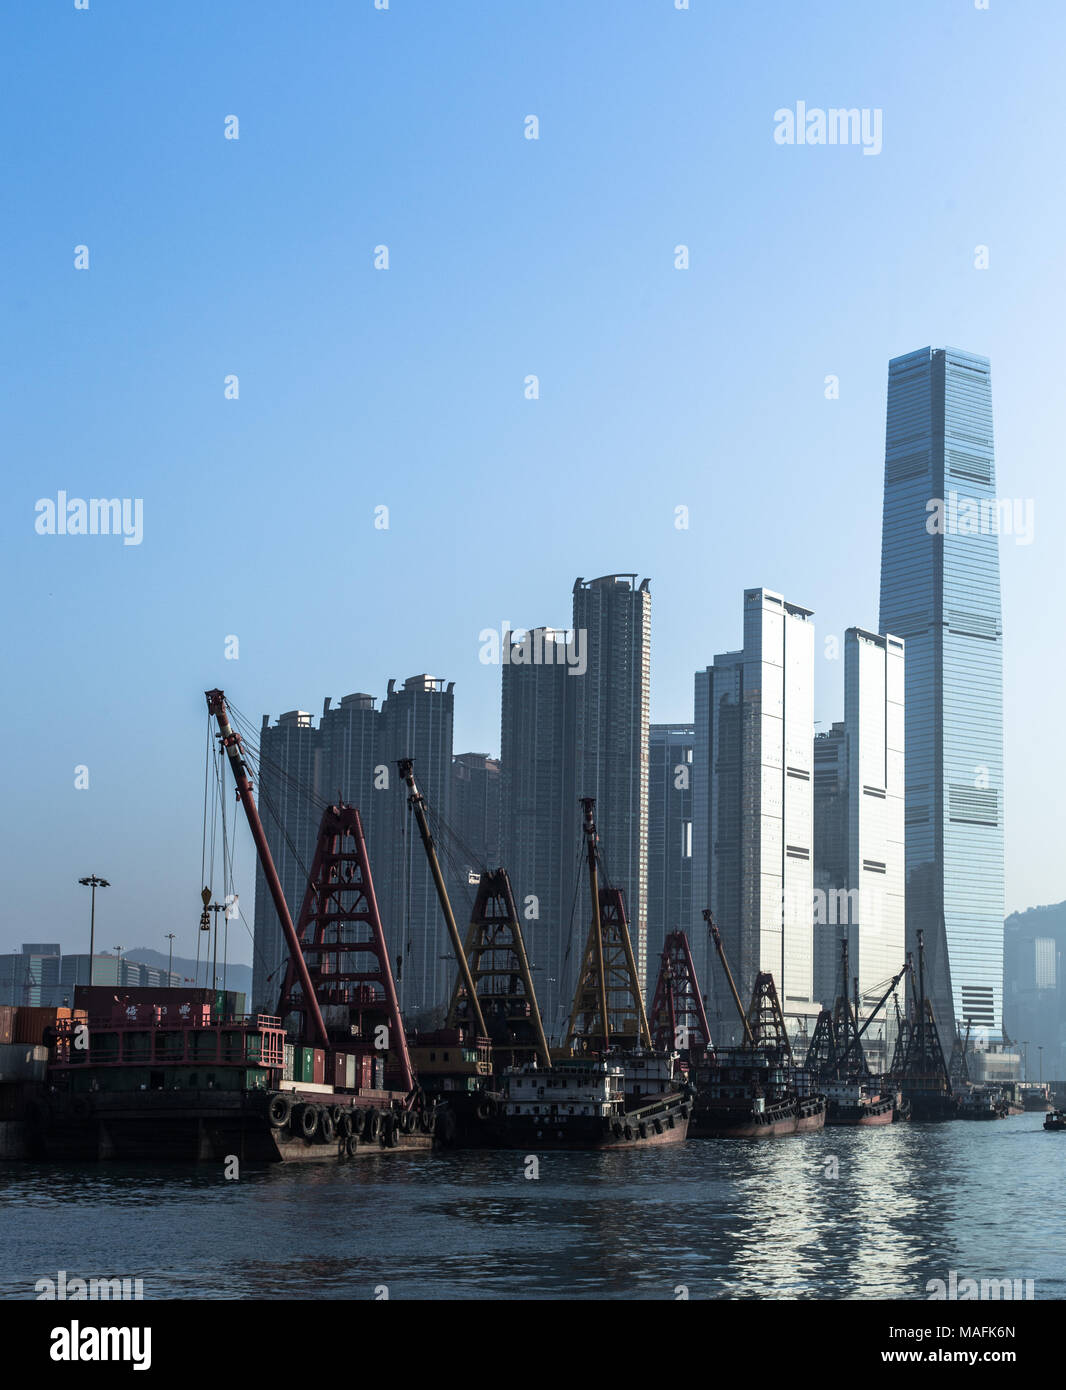 Hong Kong business center with a clear blue sky - Stock Image